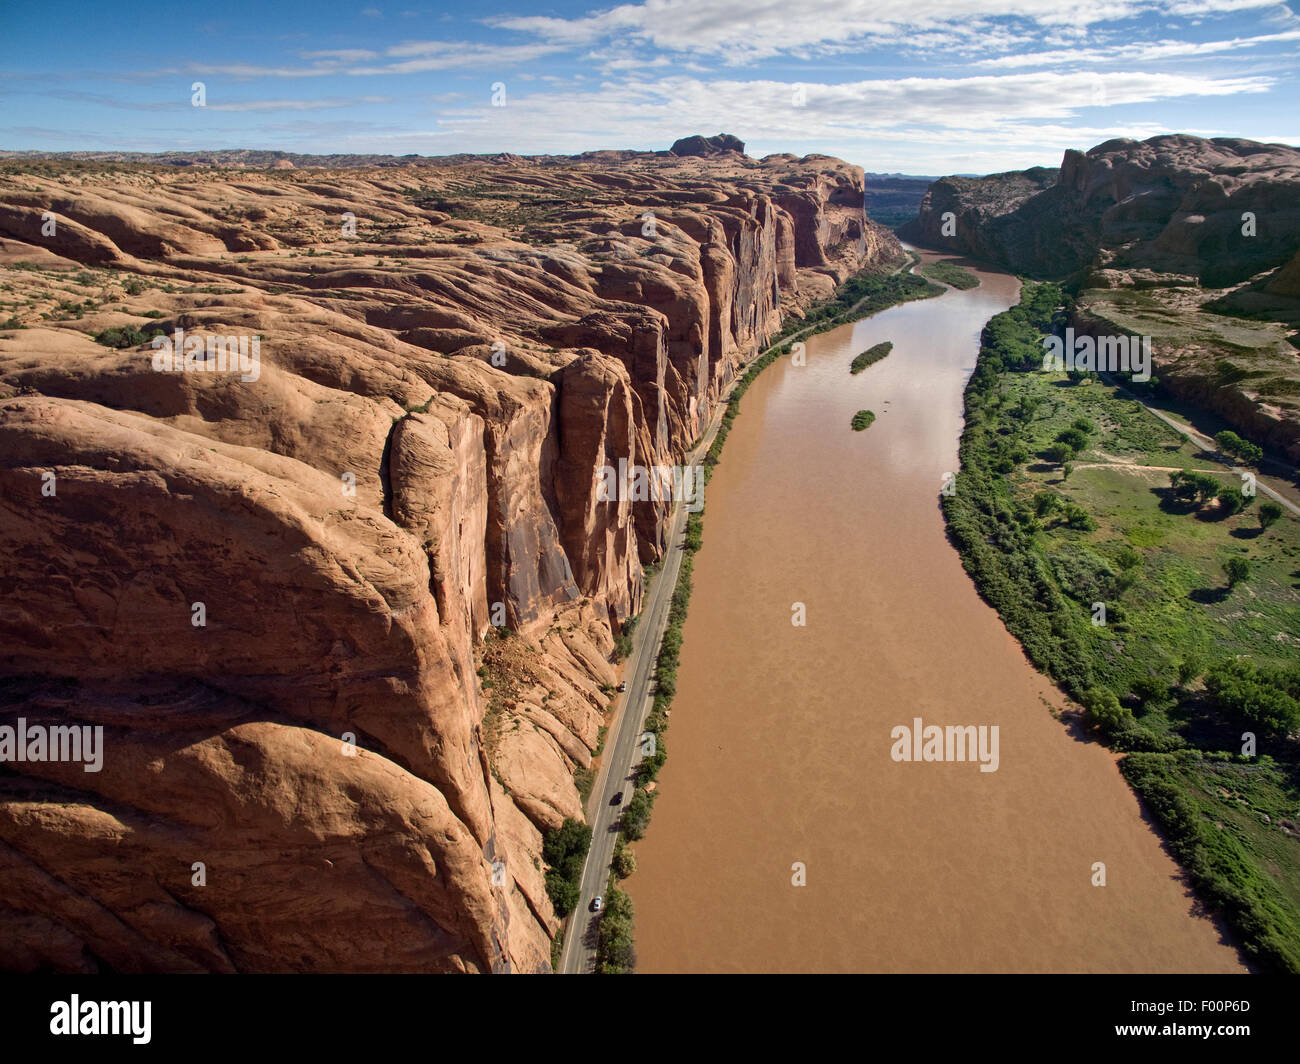 Aerial of Wall Street is an immense 500' high Wingate Sandstone cliff west of Moab, Utah - Stock Image